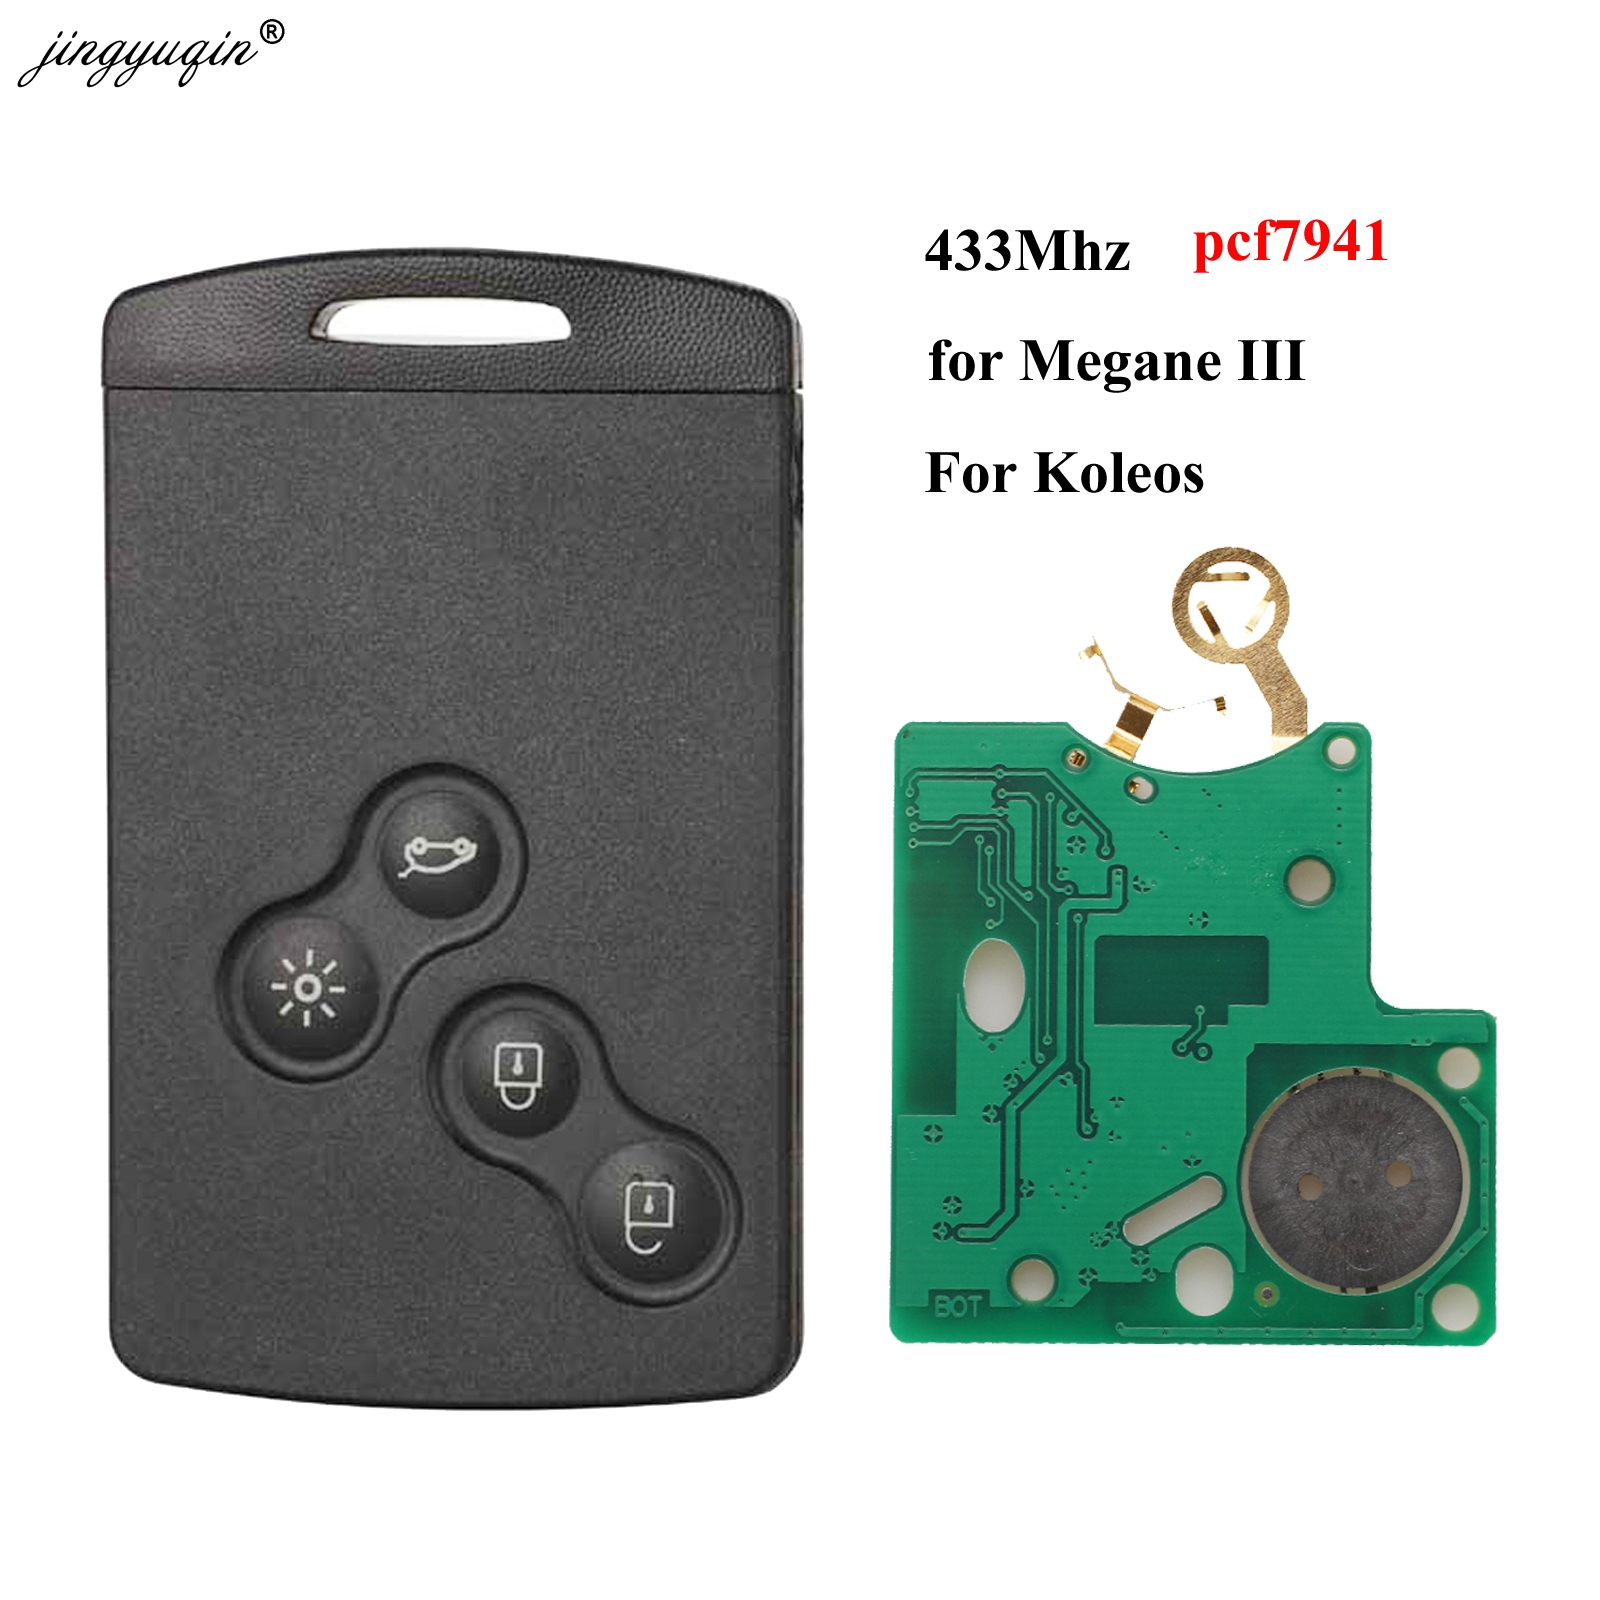 Jingyuqin 4 Button Remote Card Pcf7941 Chip 433MHZ For Renault Megane III Laguna III Fit Koleos CLIO Smart Card Before 2016